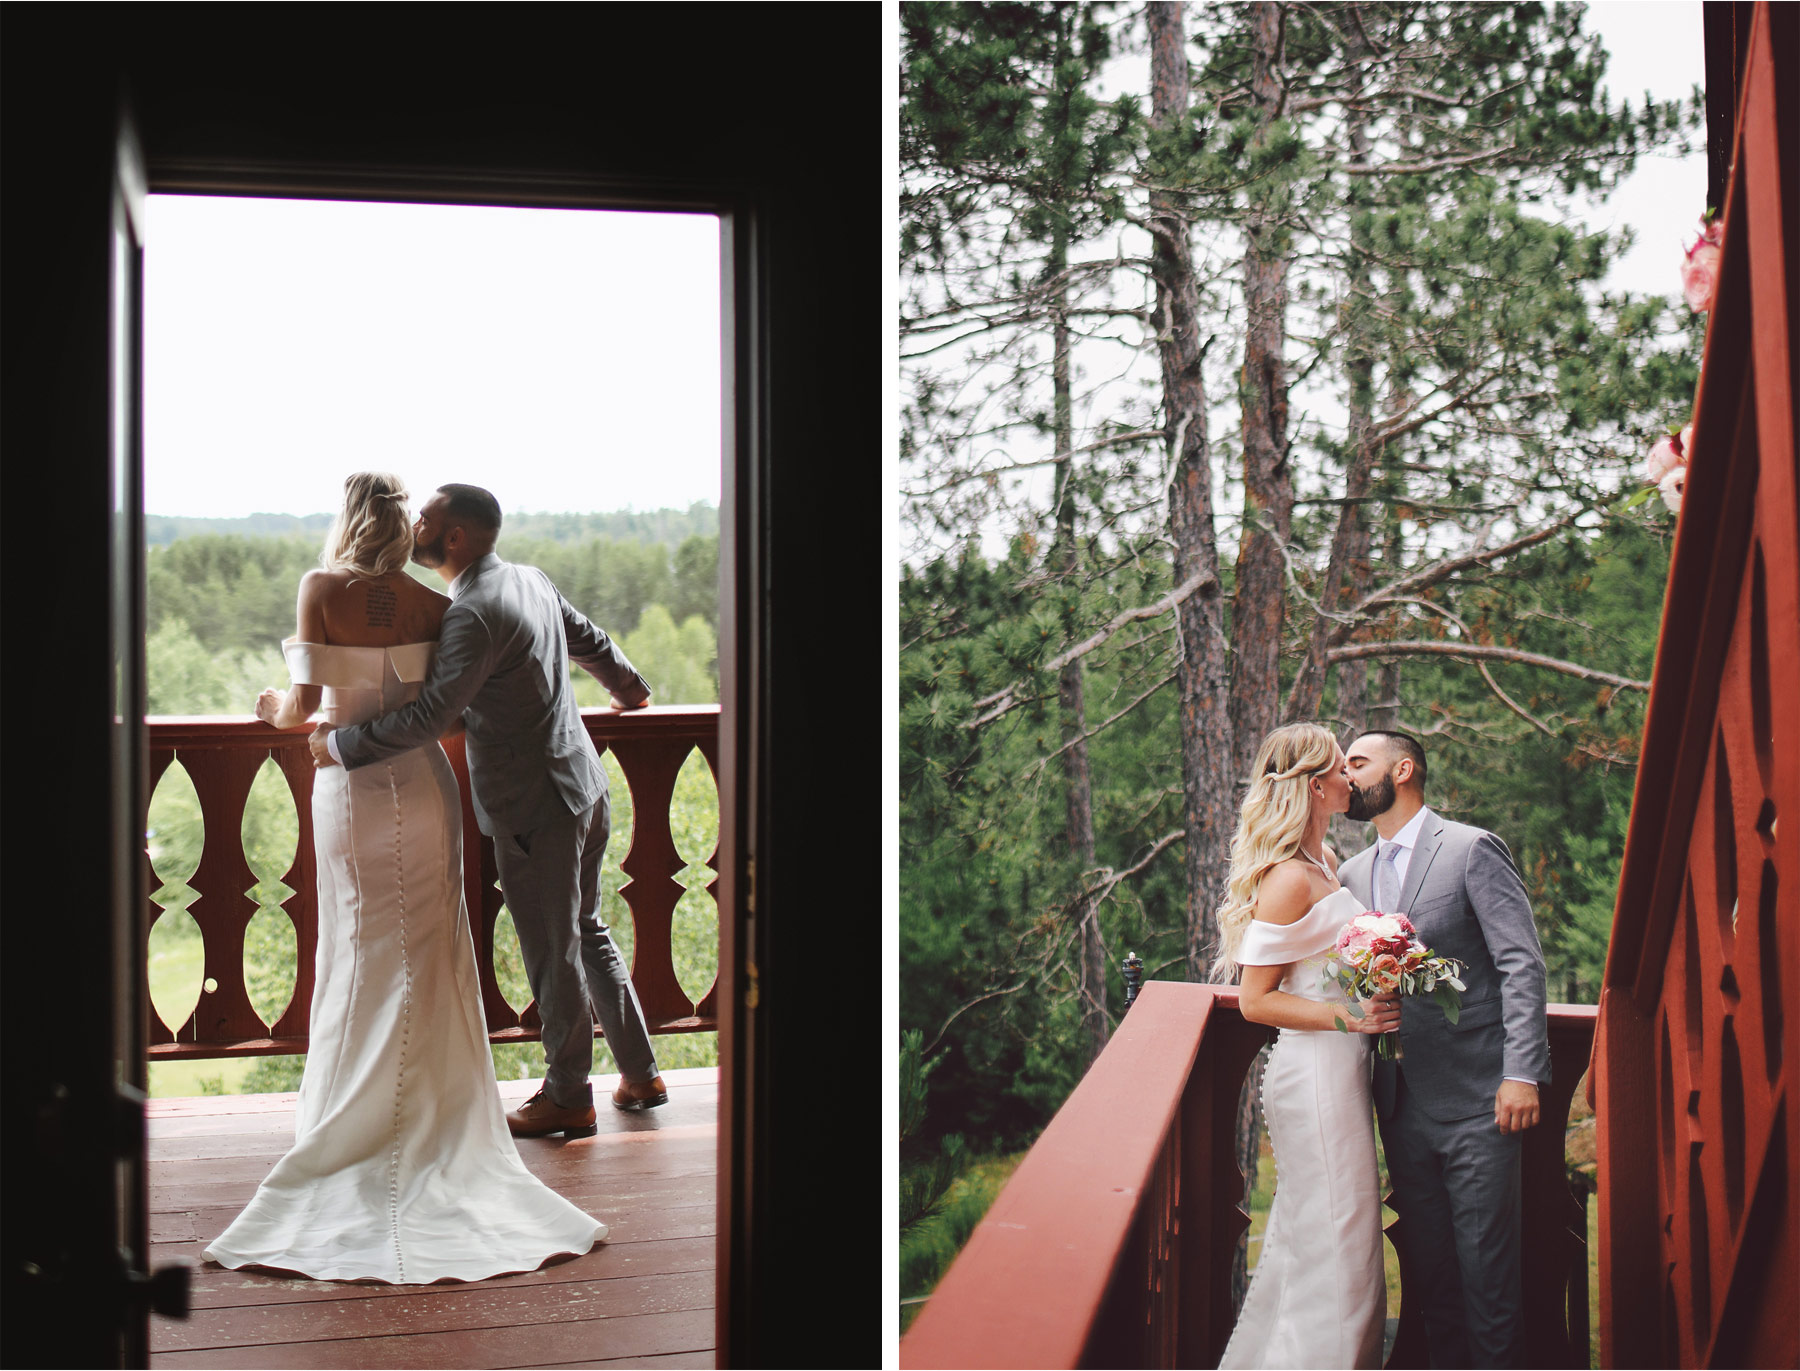 07-Ely-Minnesota-North-Wedding-by-Andrew-Vick-Photography-Bride-Groom-First-Look-Cabin-Woods-Kiss-Katie-and-Joe.jpg